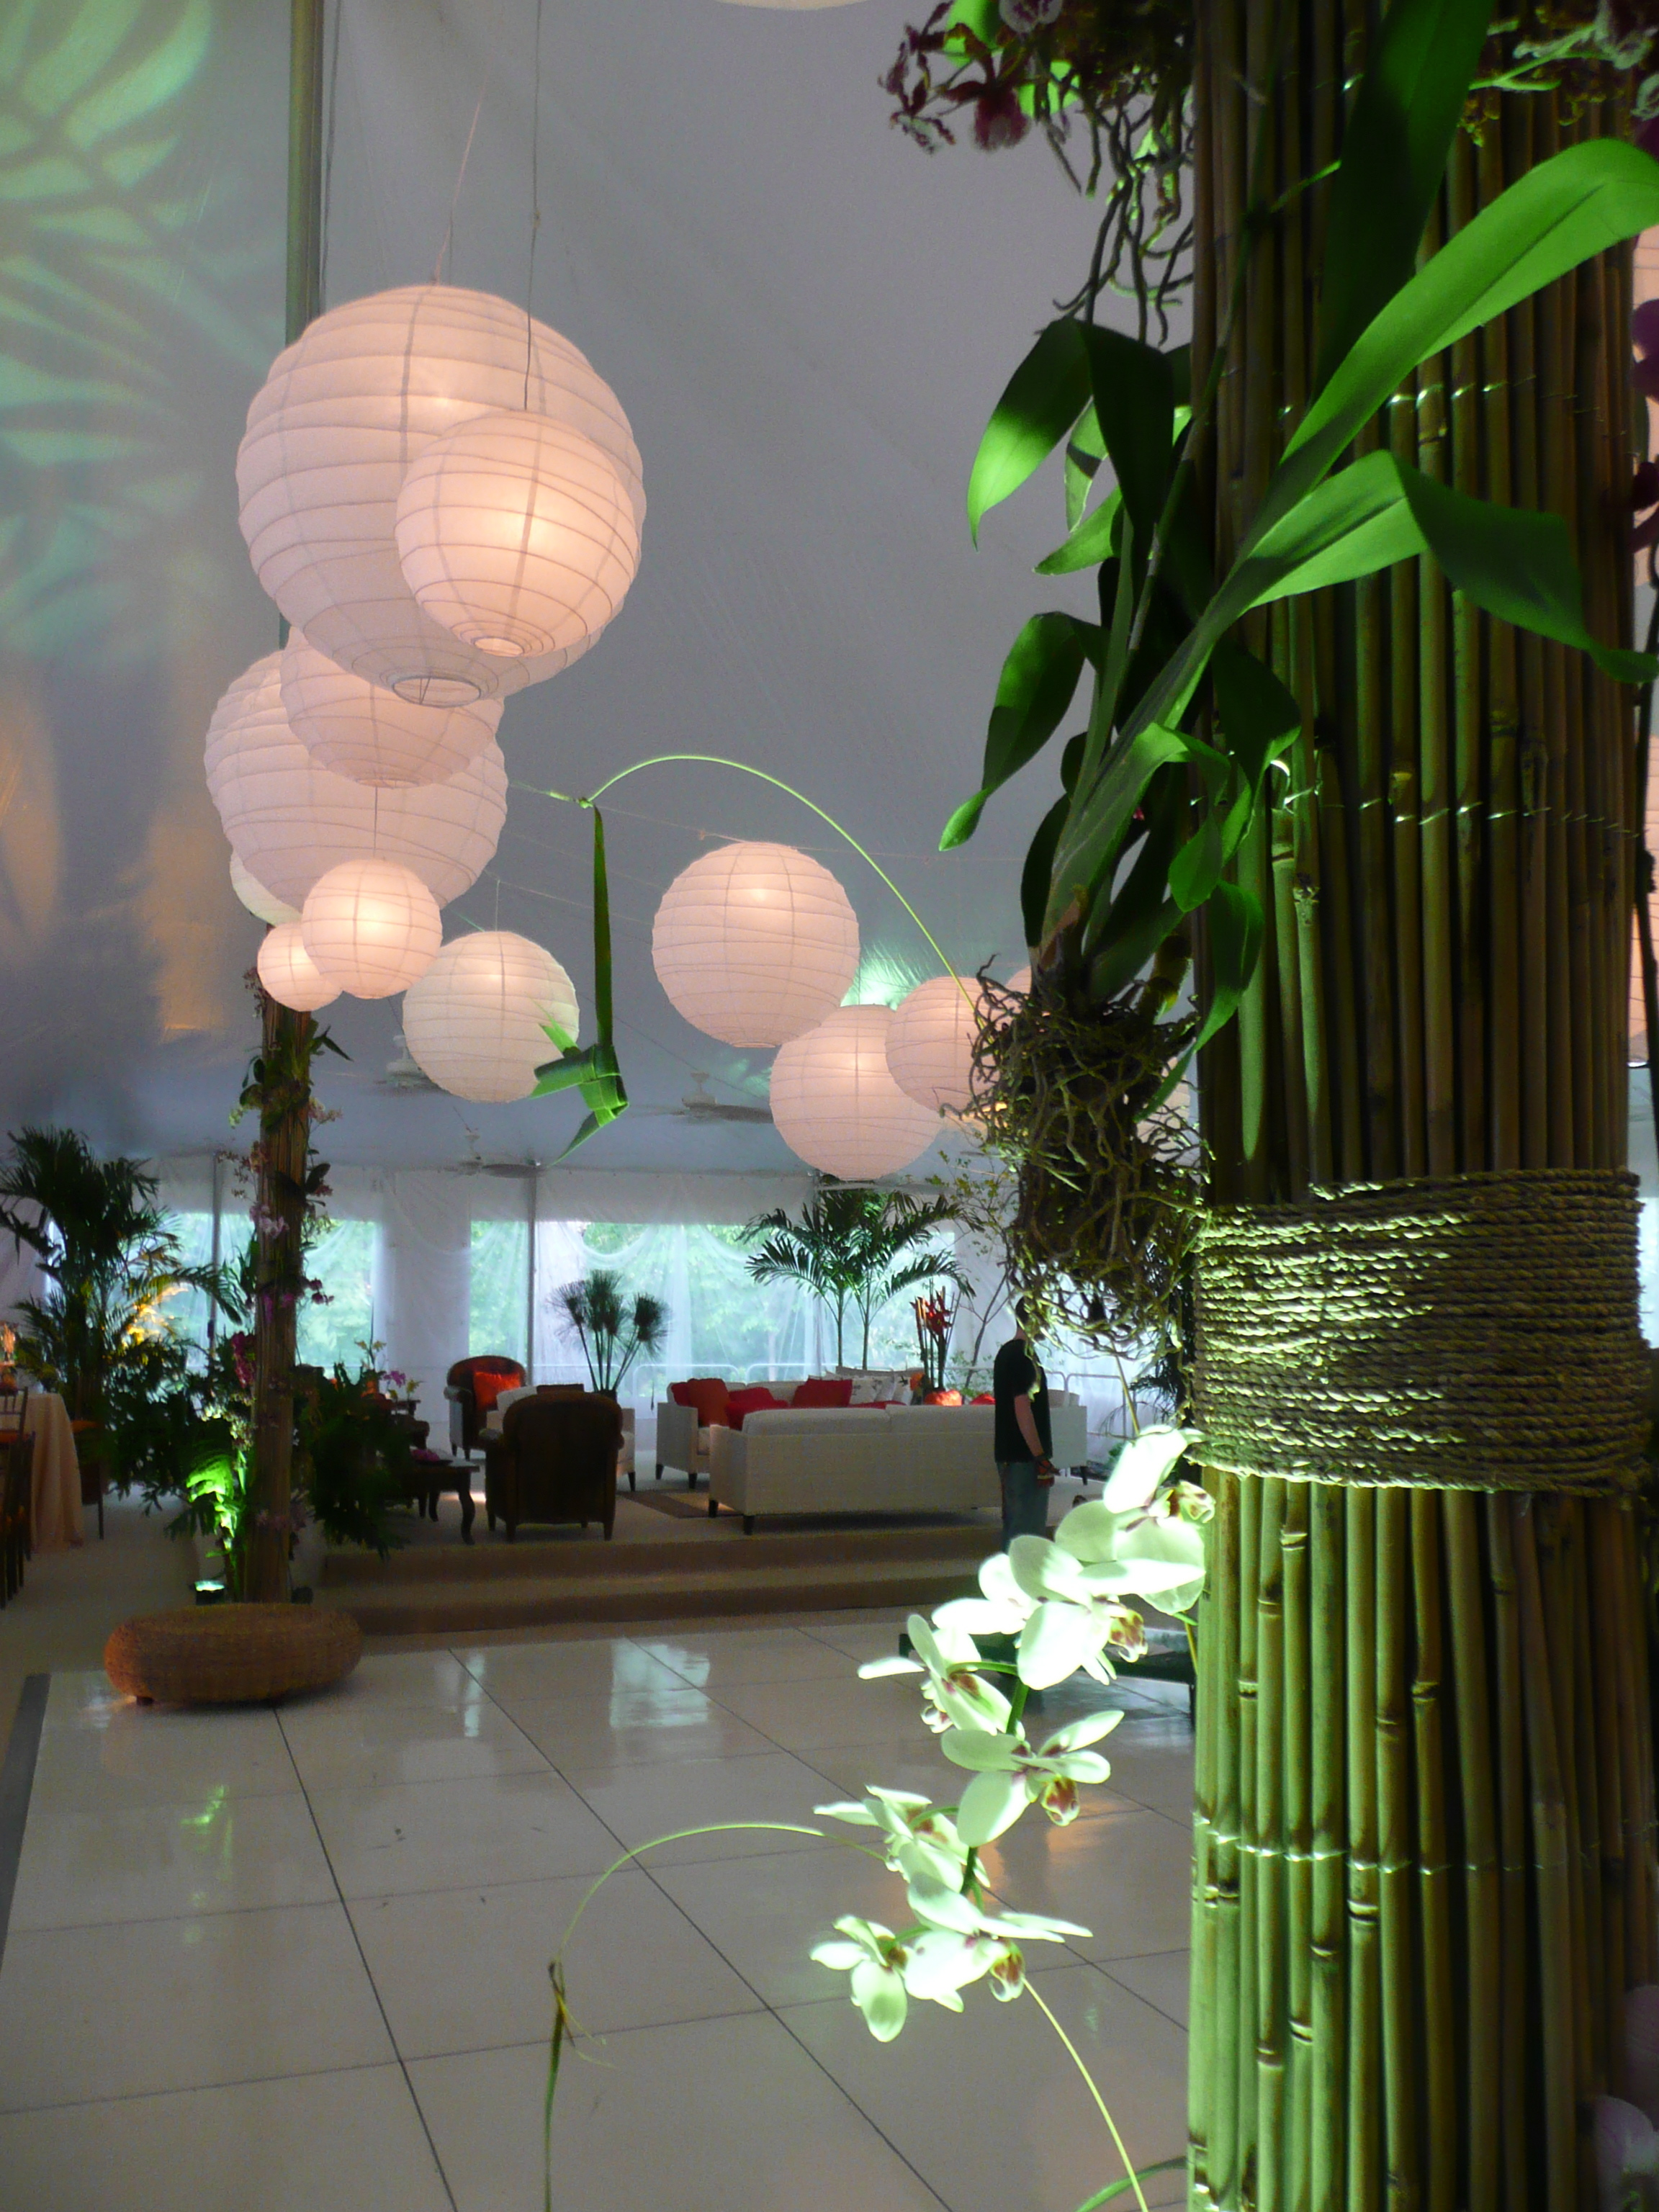 tropical+event+decor+design+rentals+for+rental+lighting+nj+ny+pa+eggsotic+events.jpg